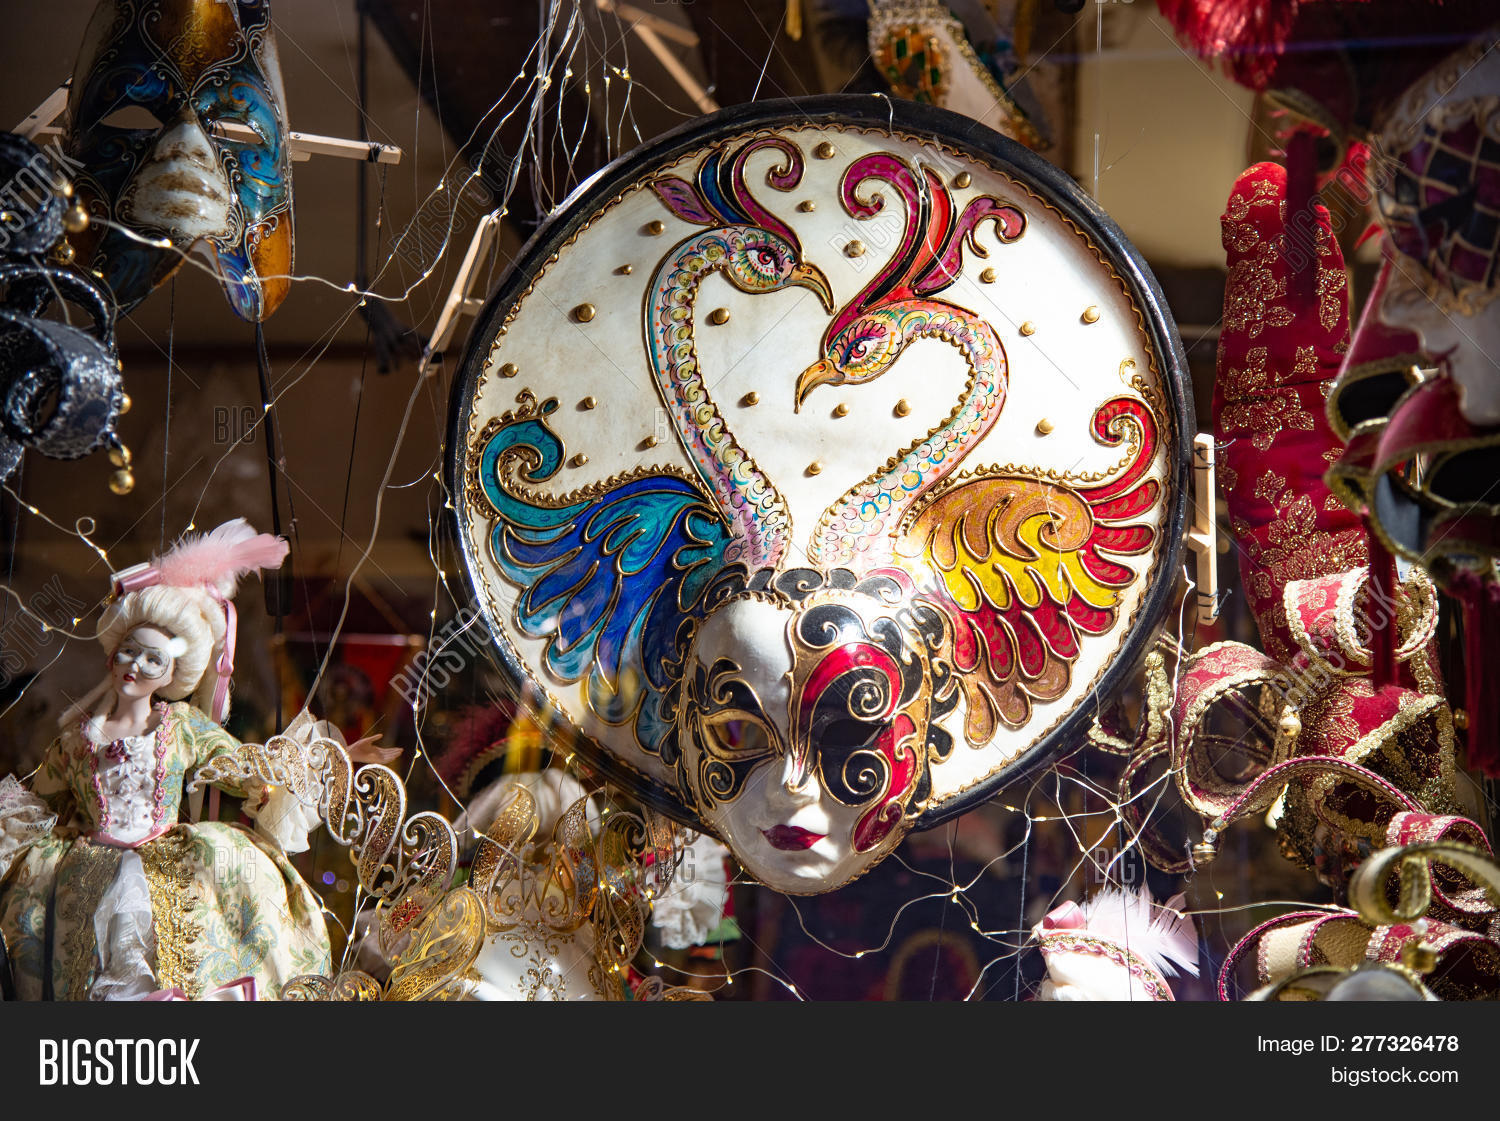 Large Venetian Image Photo Free Trial Bigstock